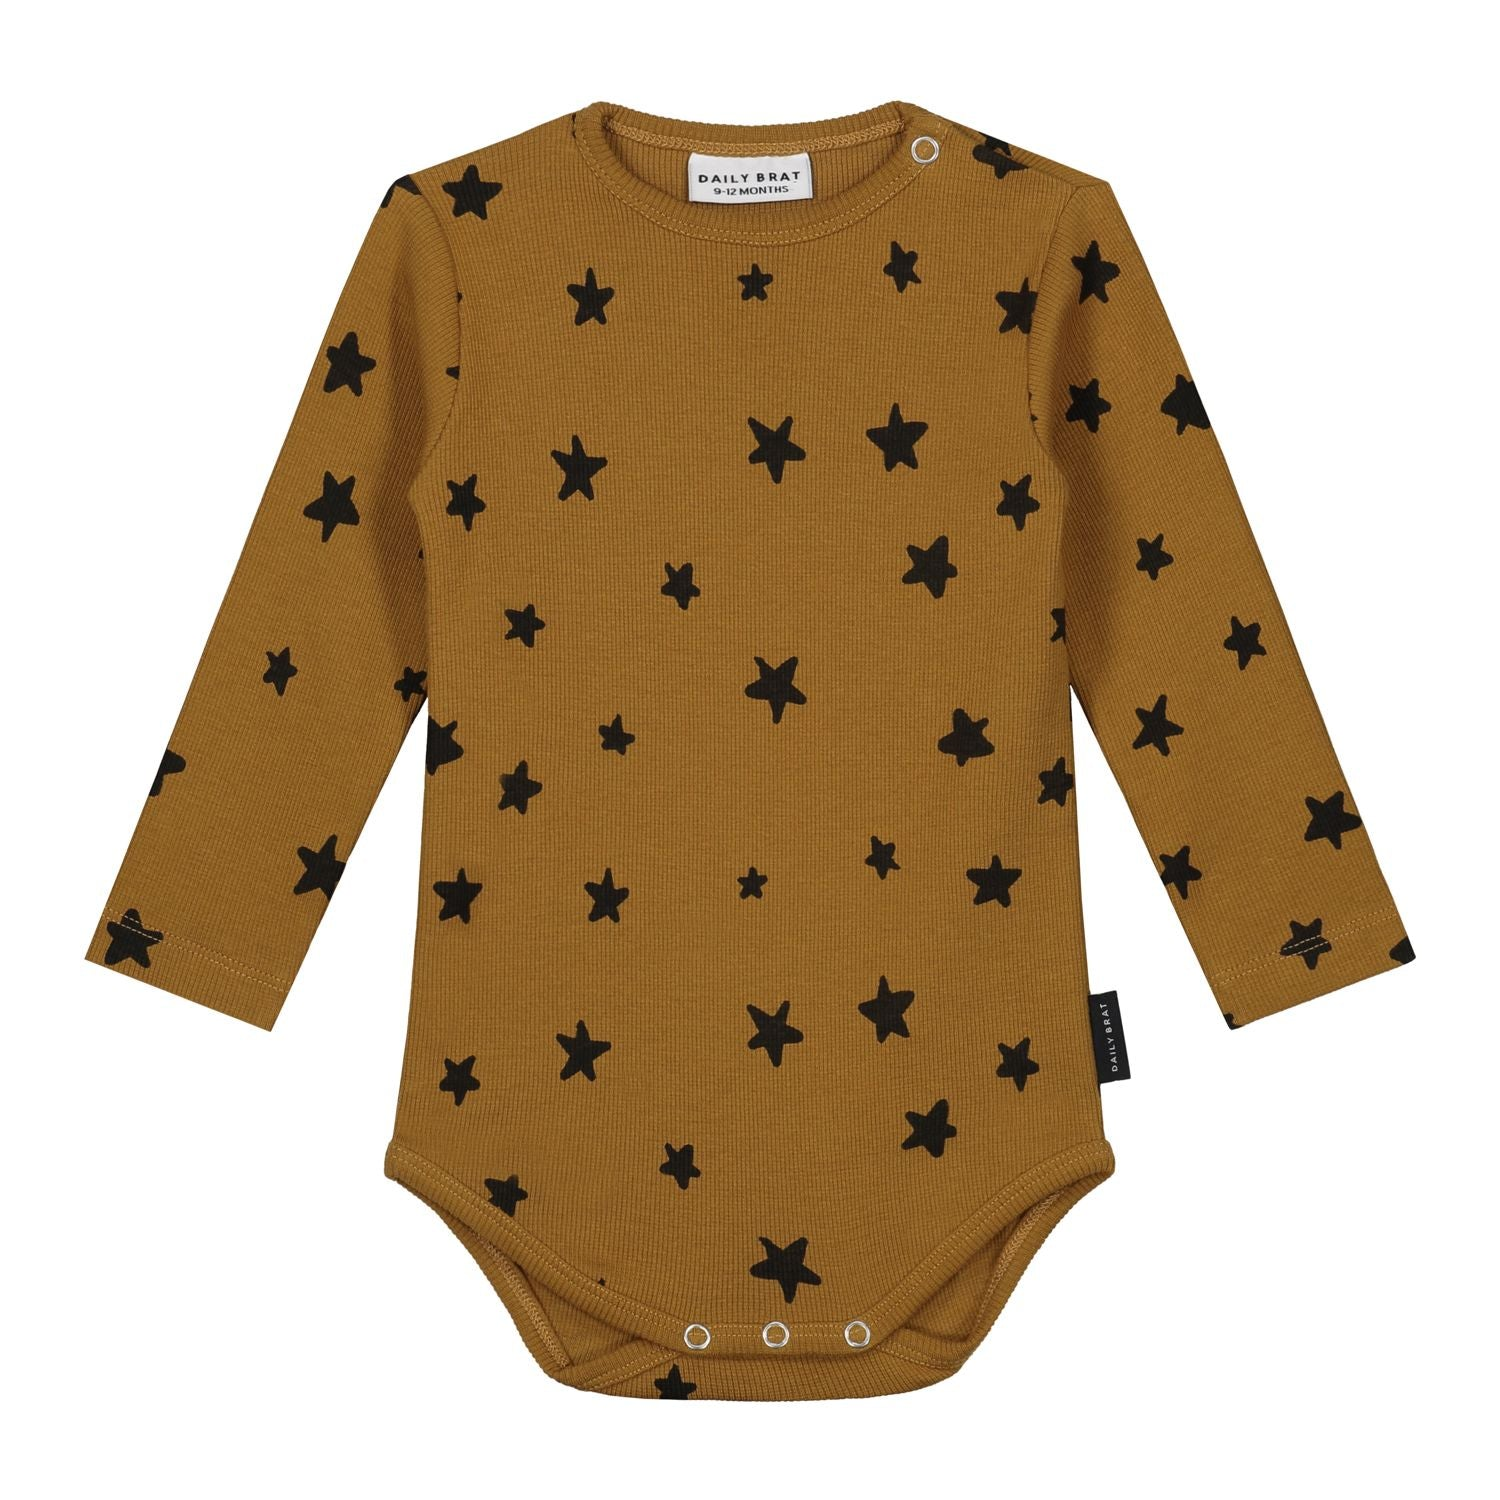 Daily Brat mini star body, sandstone